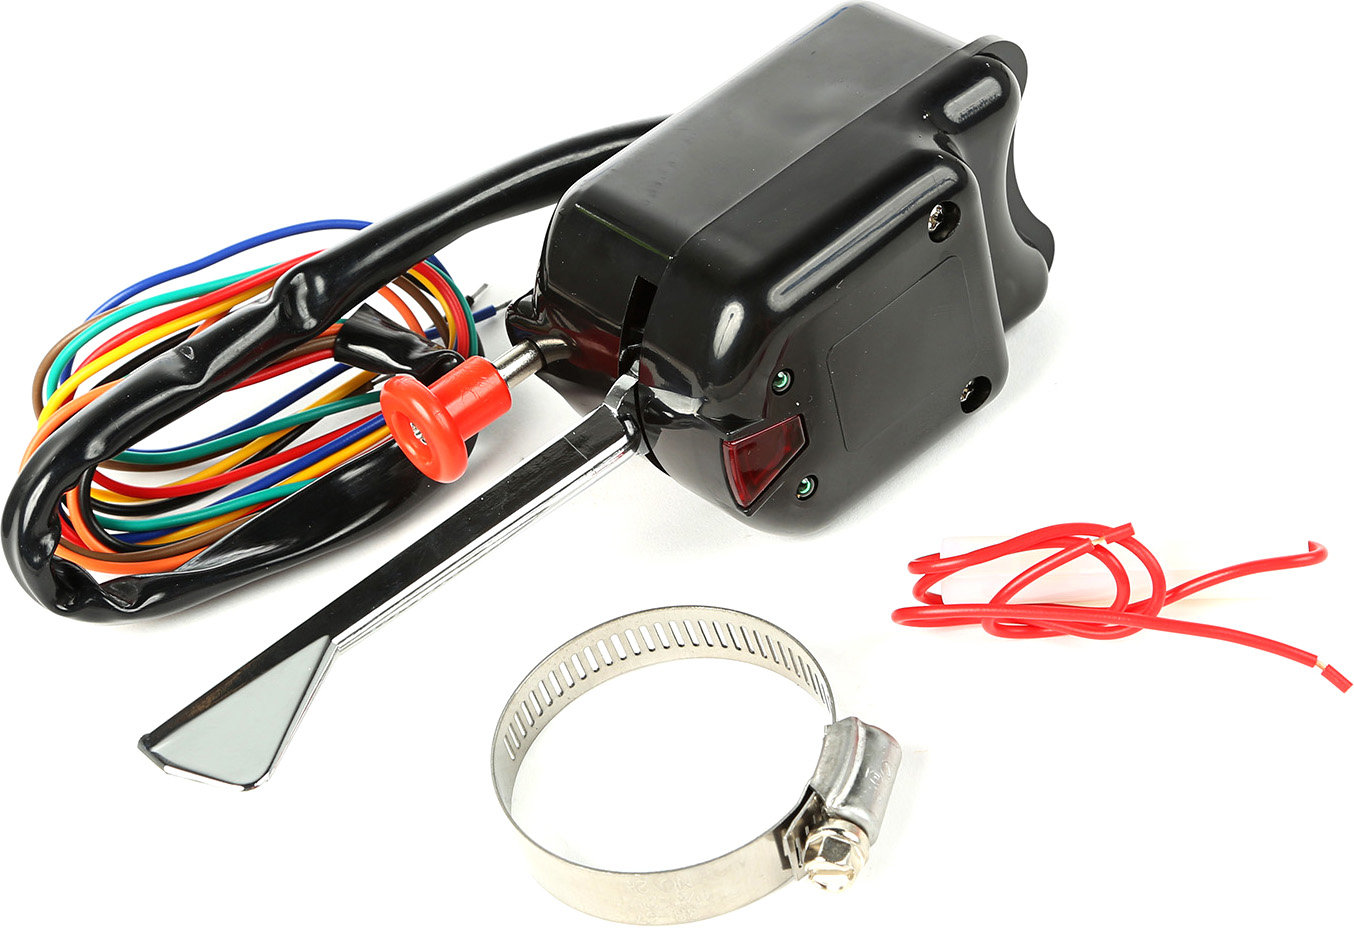 hight resolution of omix ada 17232 03 turn signal switch for 46 71 jeep willy s cj replacement turn signal switch kit from omixada includes the wiring